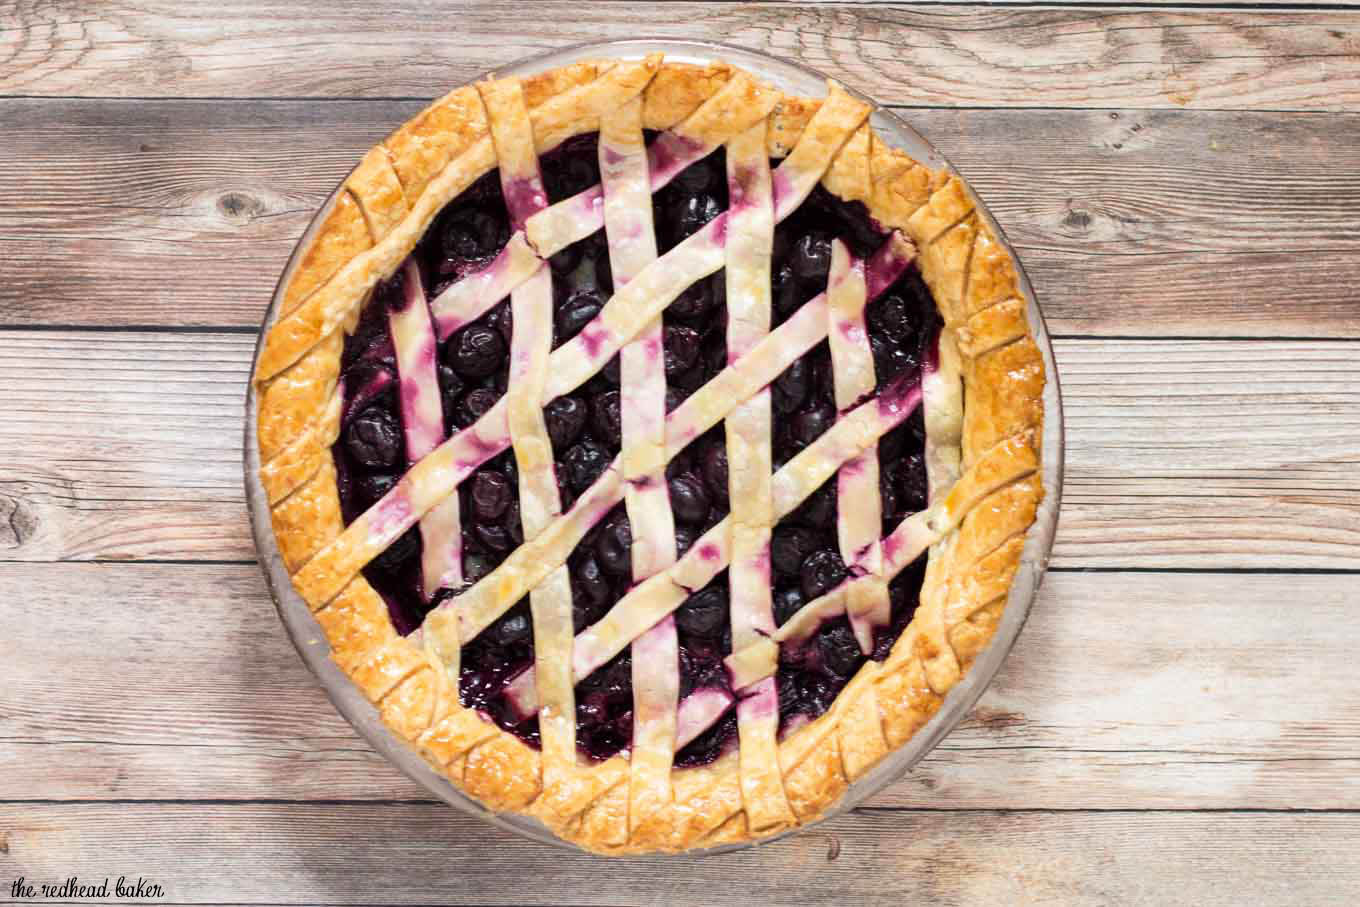 We're celebrating Pi{e} Day! Drunken cherry vanilla pie combines cherries, vanilla bean, and brandy in a flaky pie crust.